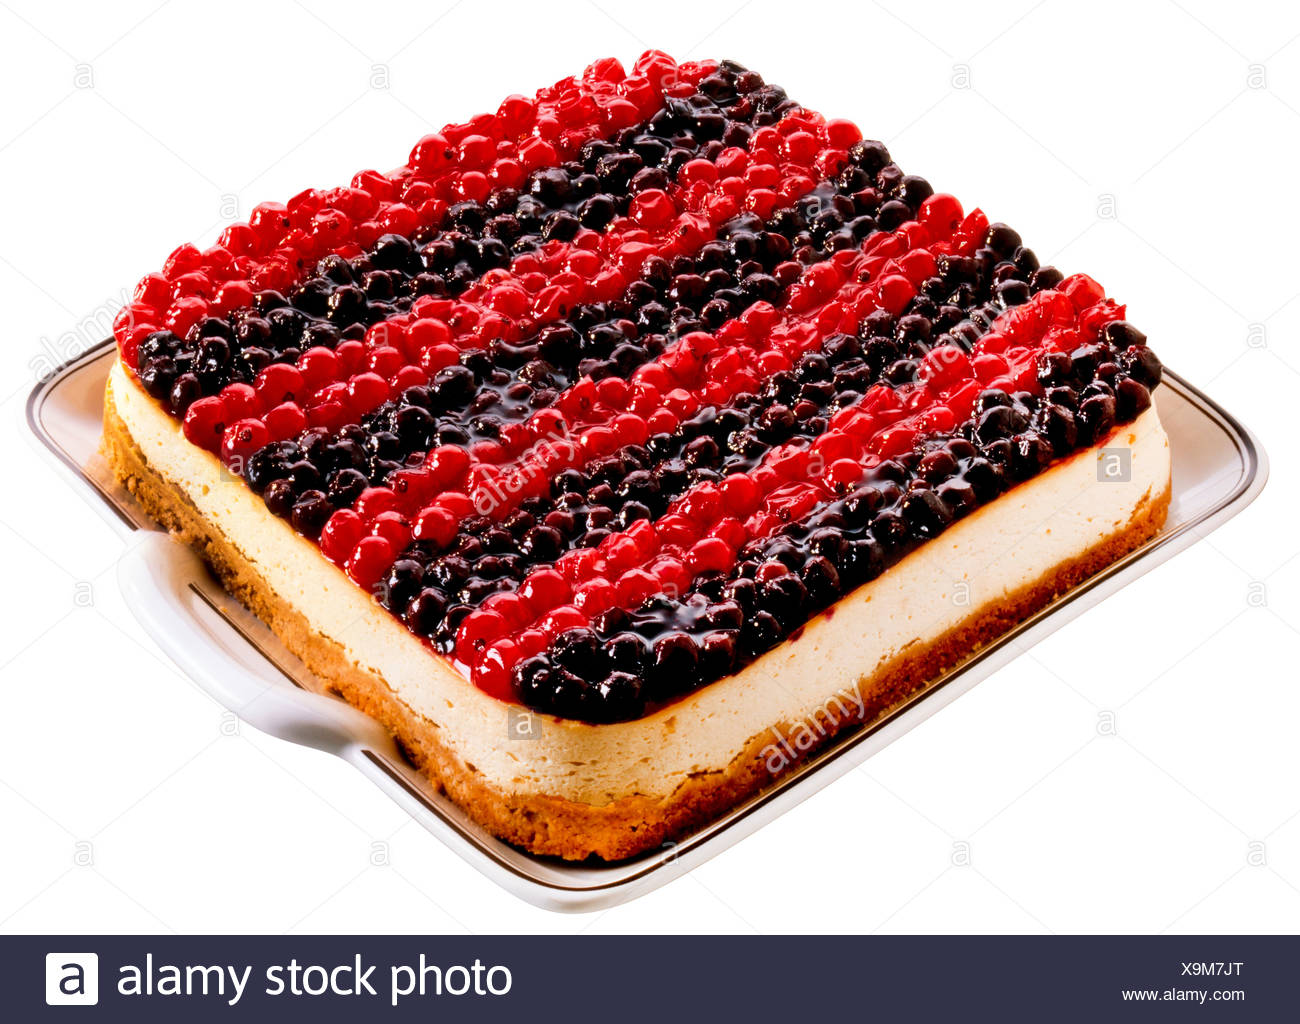 CUT OUT OF BLUEBERRY AND REDCURRANT CHEEESECAKE Stock Photo